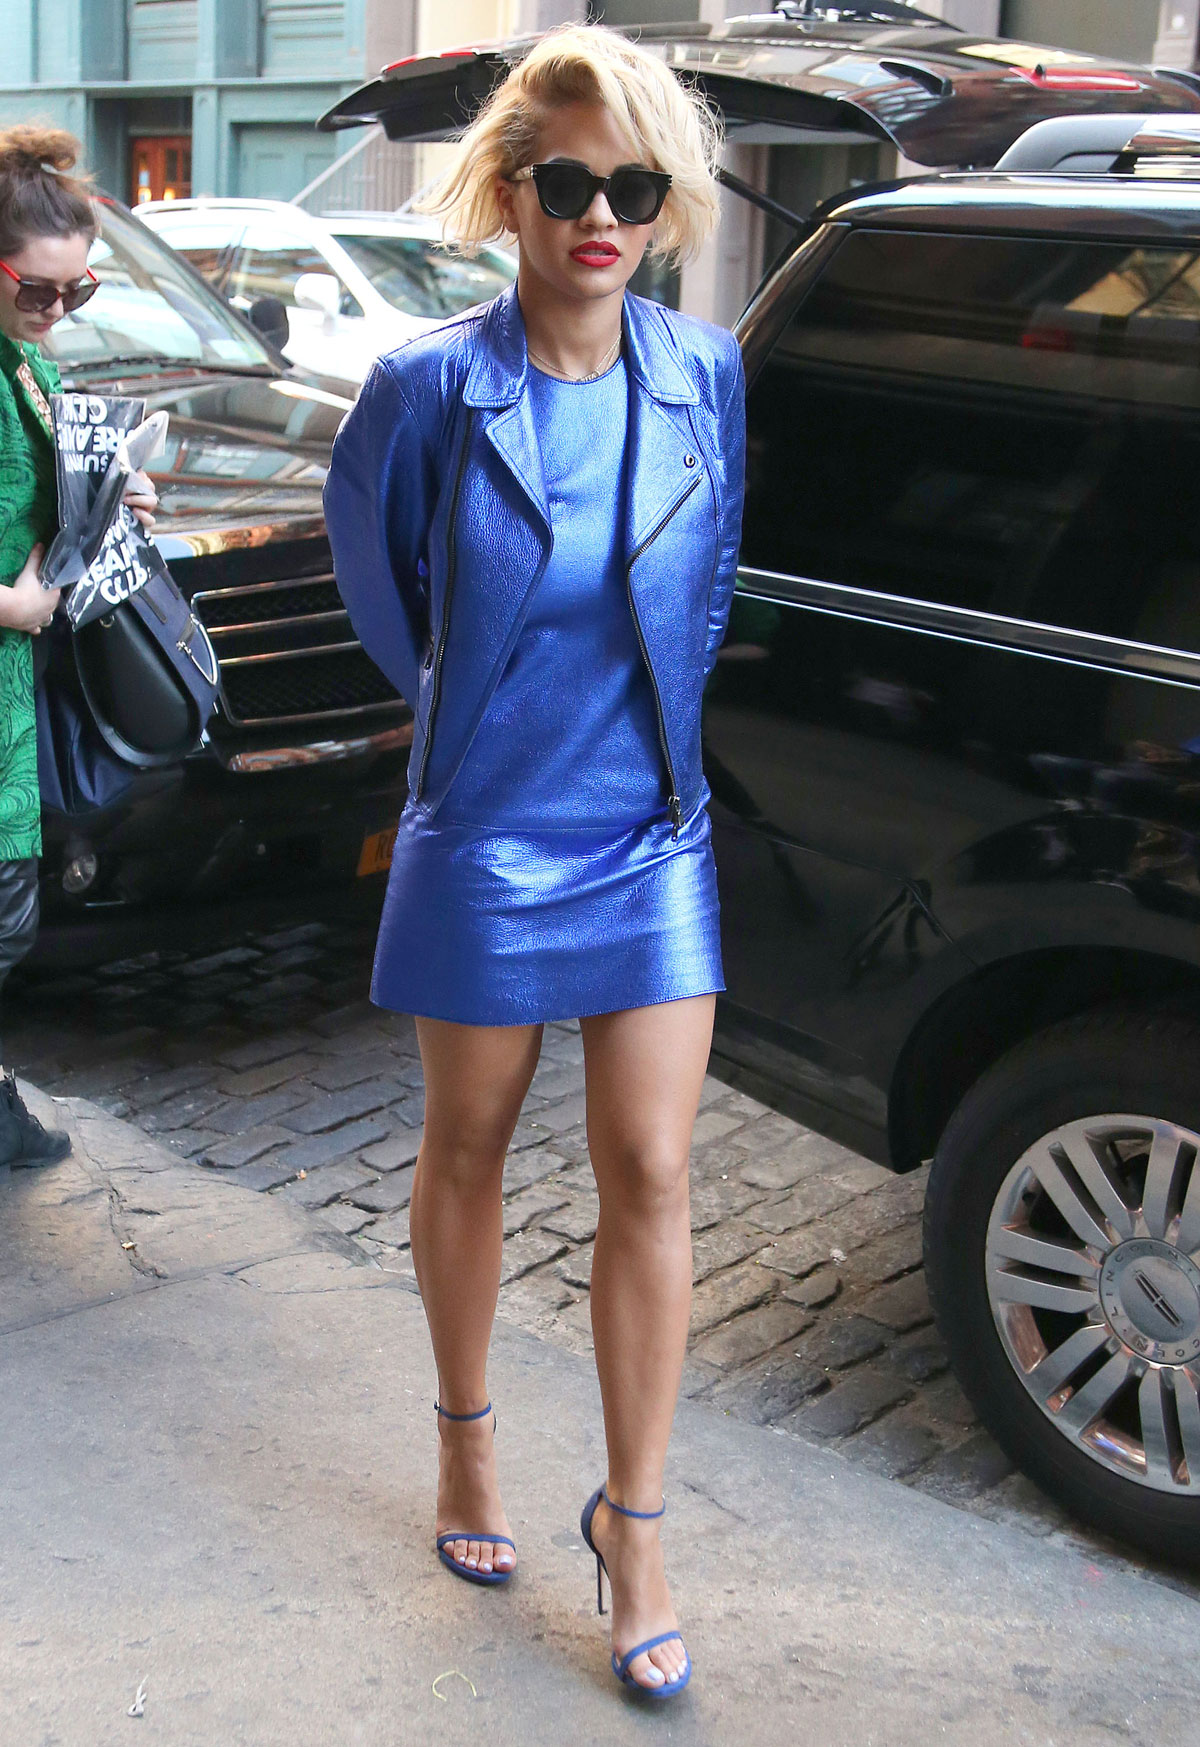 Rita Ora out and about in NYC